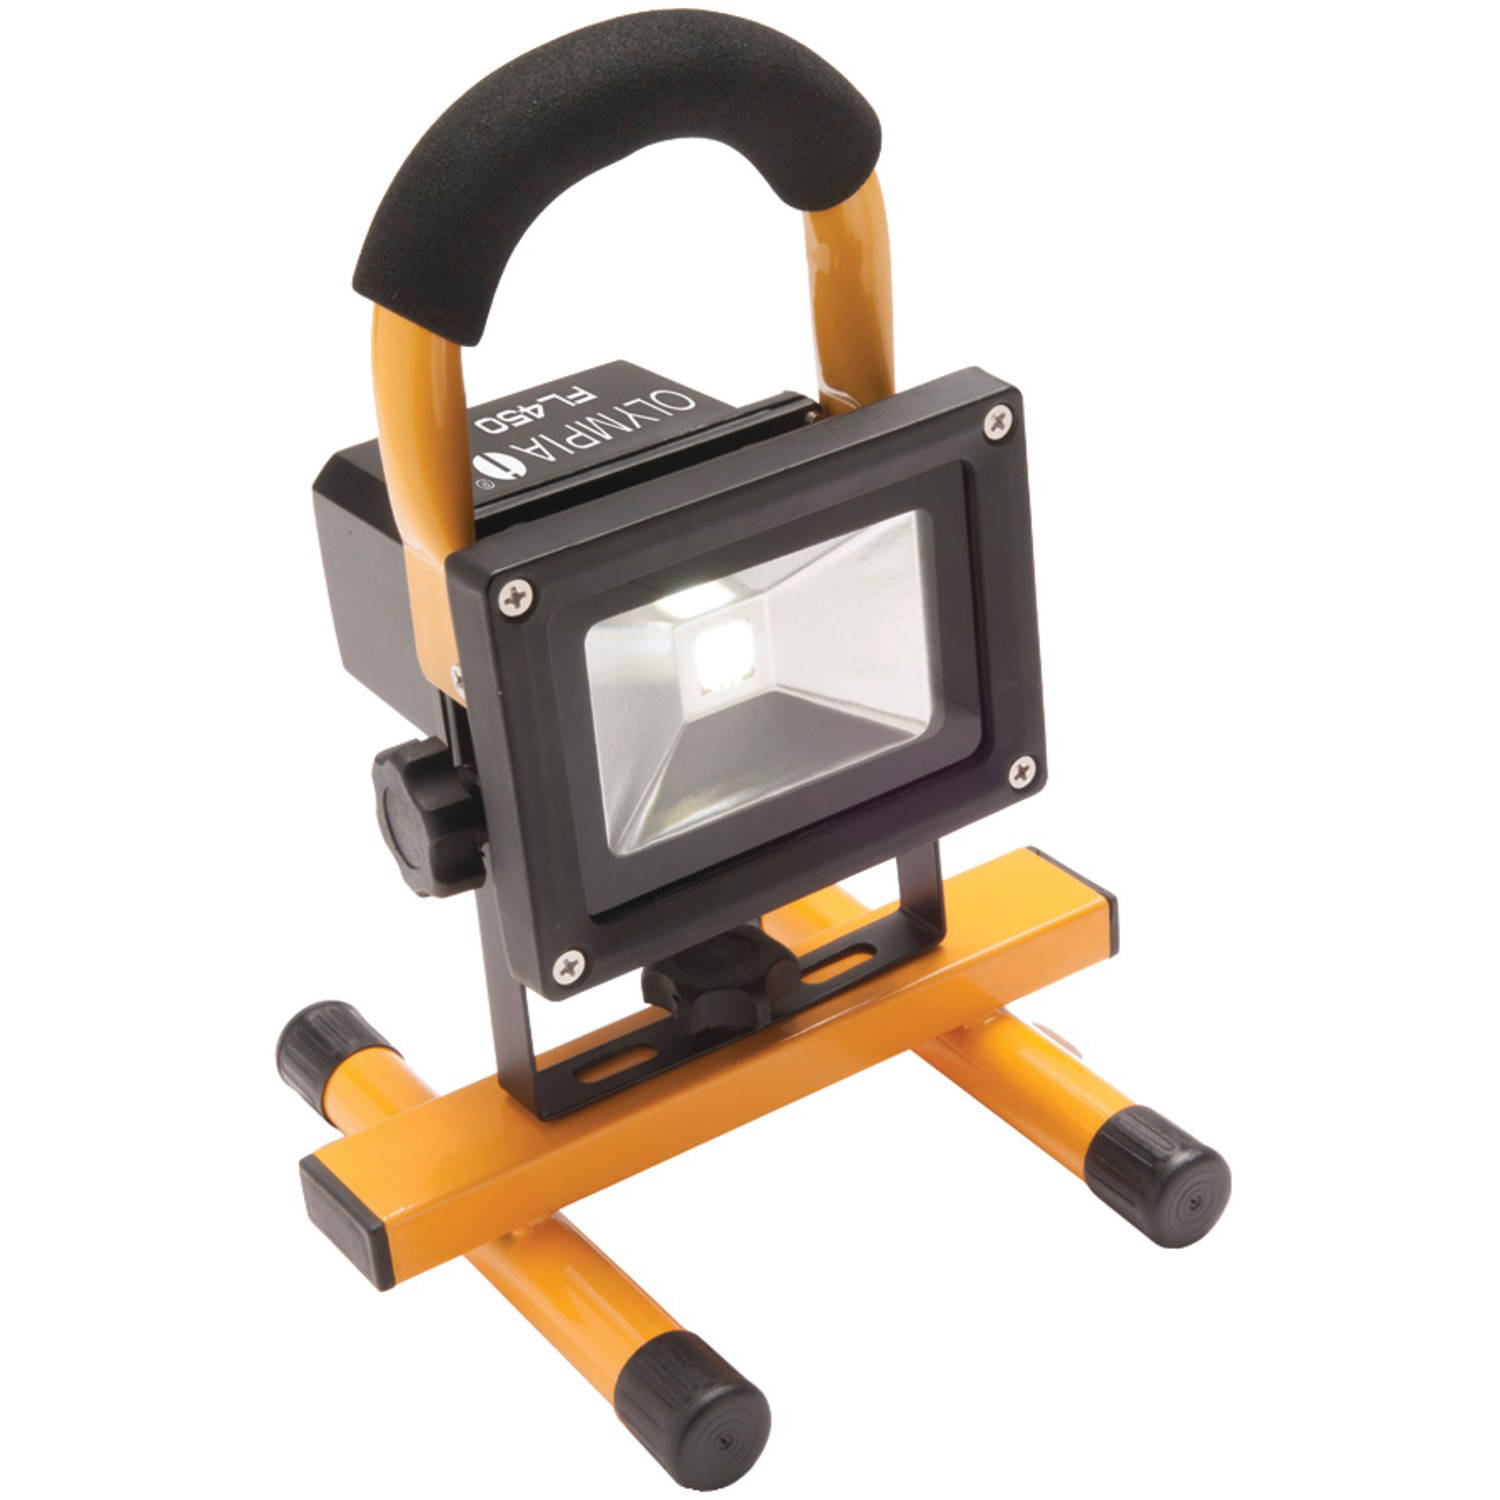 Olympia Fl450 450-Lumen Rechargeable Cordless LED Floodlight